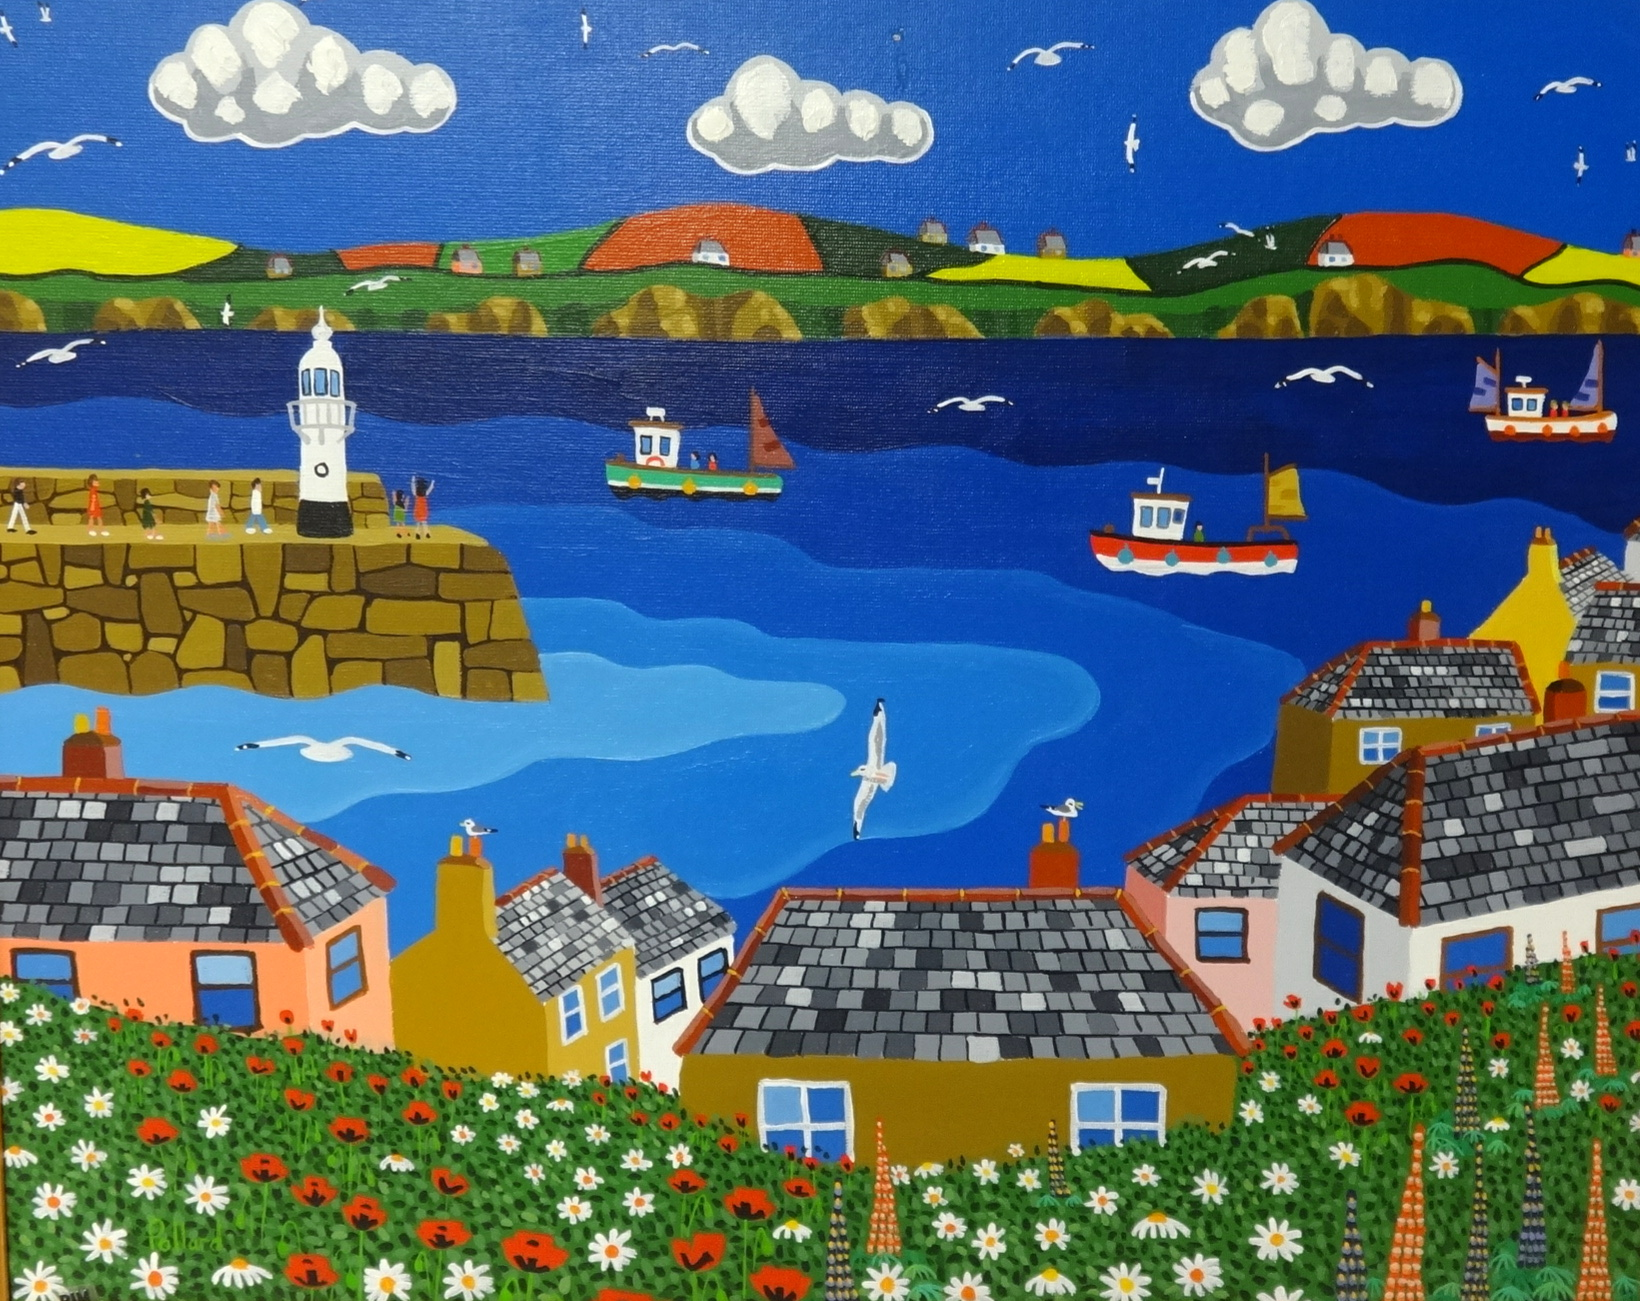 Lot 013 - Brian Pollard, original acrylic on board, signed 'St Ives Harbour, 1992', 59cm x 74cm. Provenance;